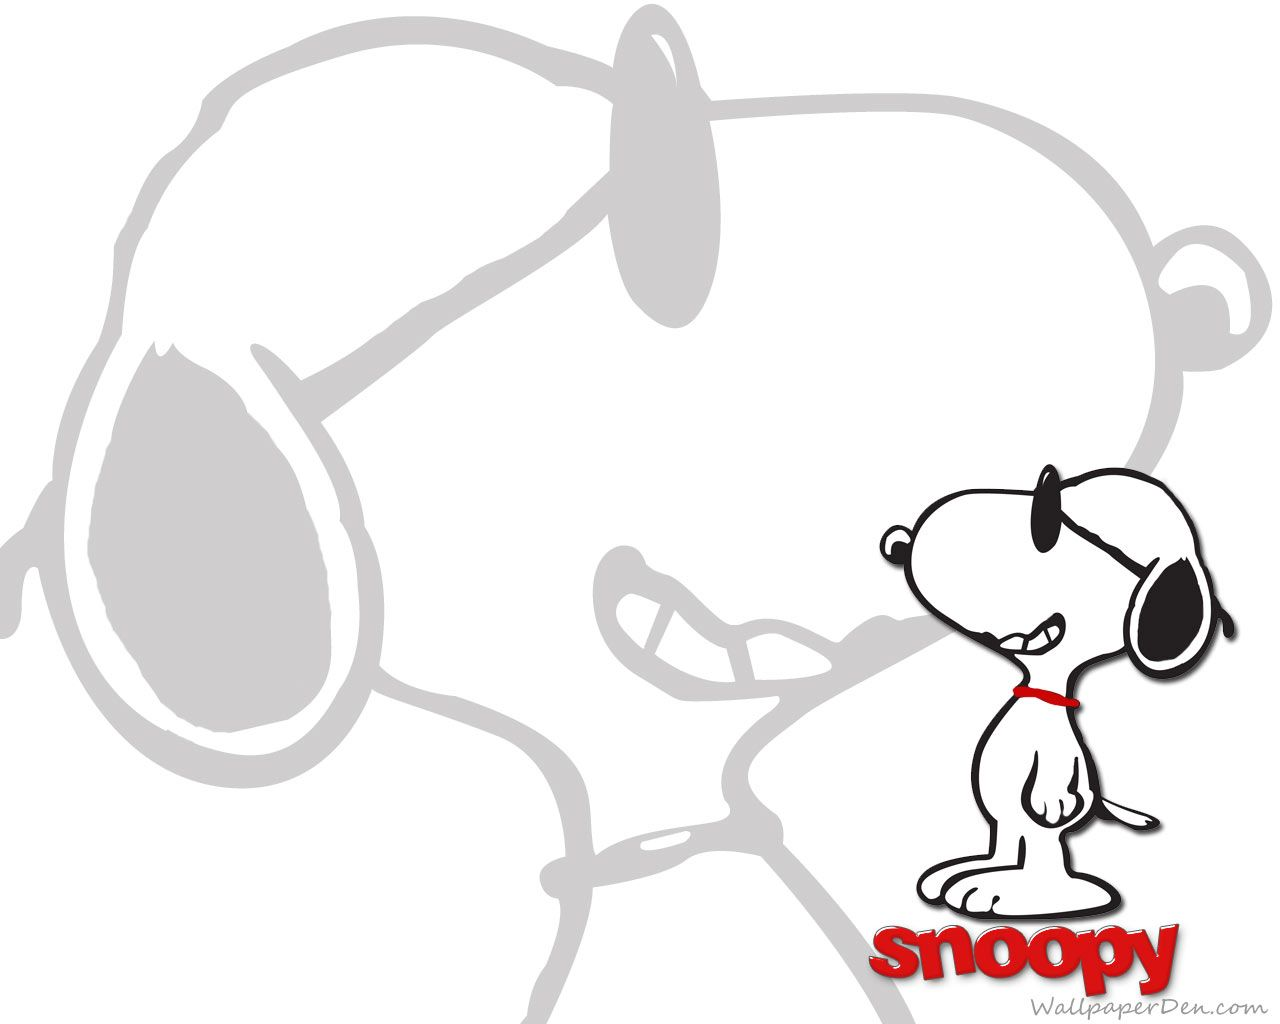 snoopy spring wallpaper   wwwwallpaper free downloadcom 1280x1024